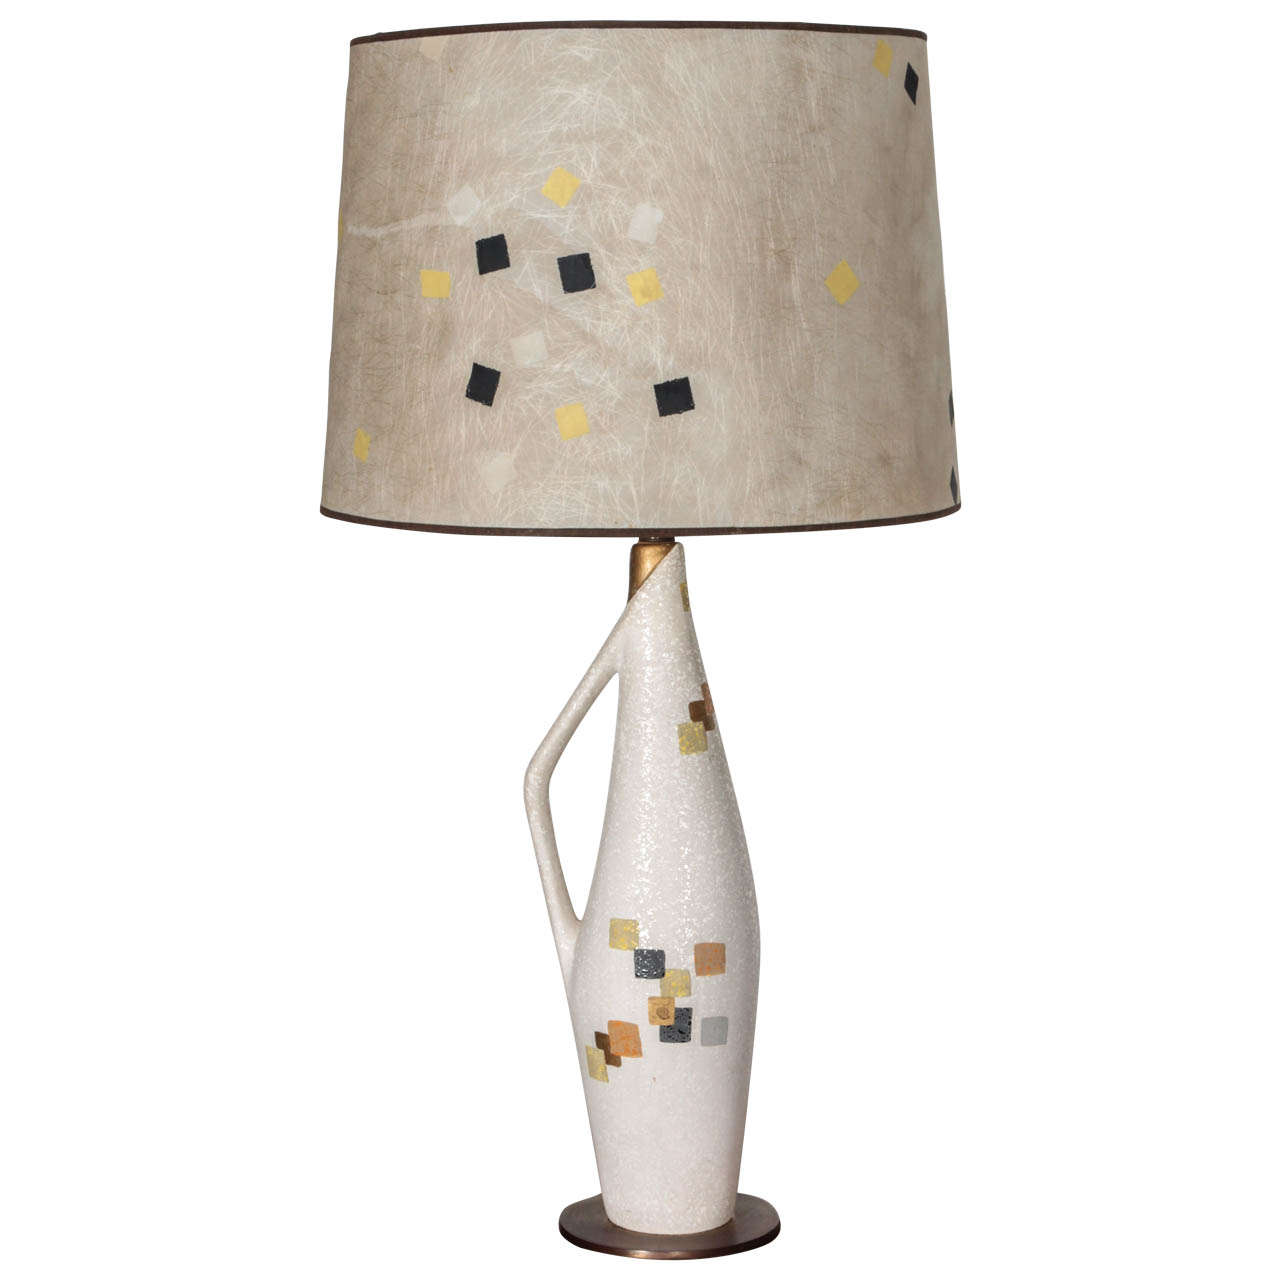 Tye of California Ceramic Table Lamp